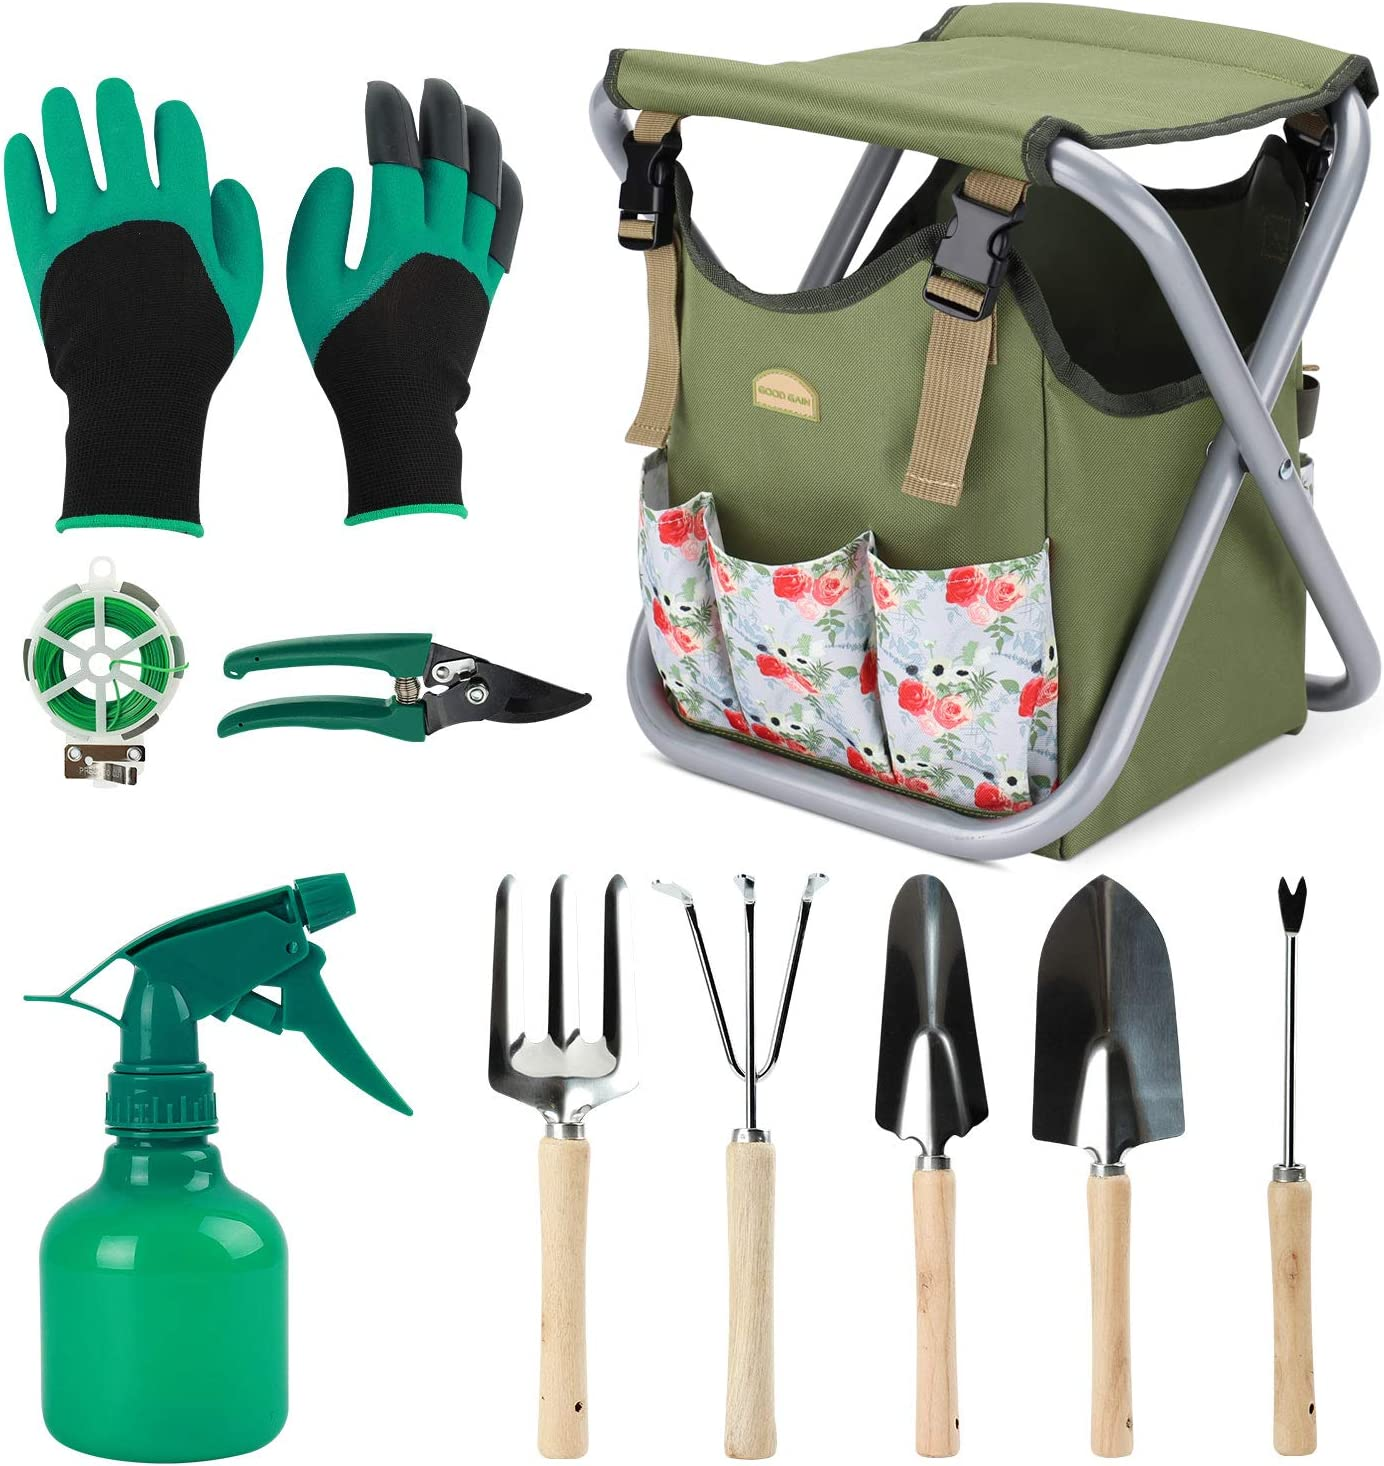 G GOOD GAIN 12 pcs Garden Tools Stool, Gardening Hand Tools Set with Folding Chair Seat and Garden Storage Tote Bag, Garden Tools Carrier, Digging, Gardening Gifts Set for Mom/Dad and Gardeners. Rose